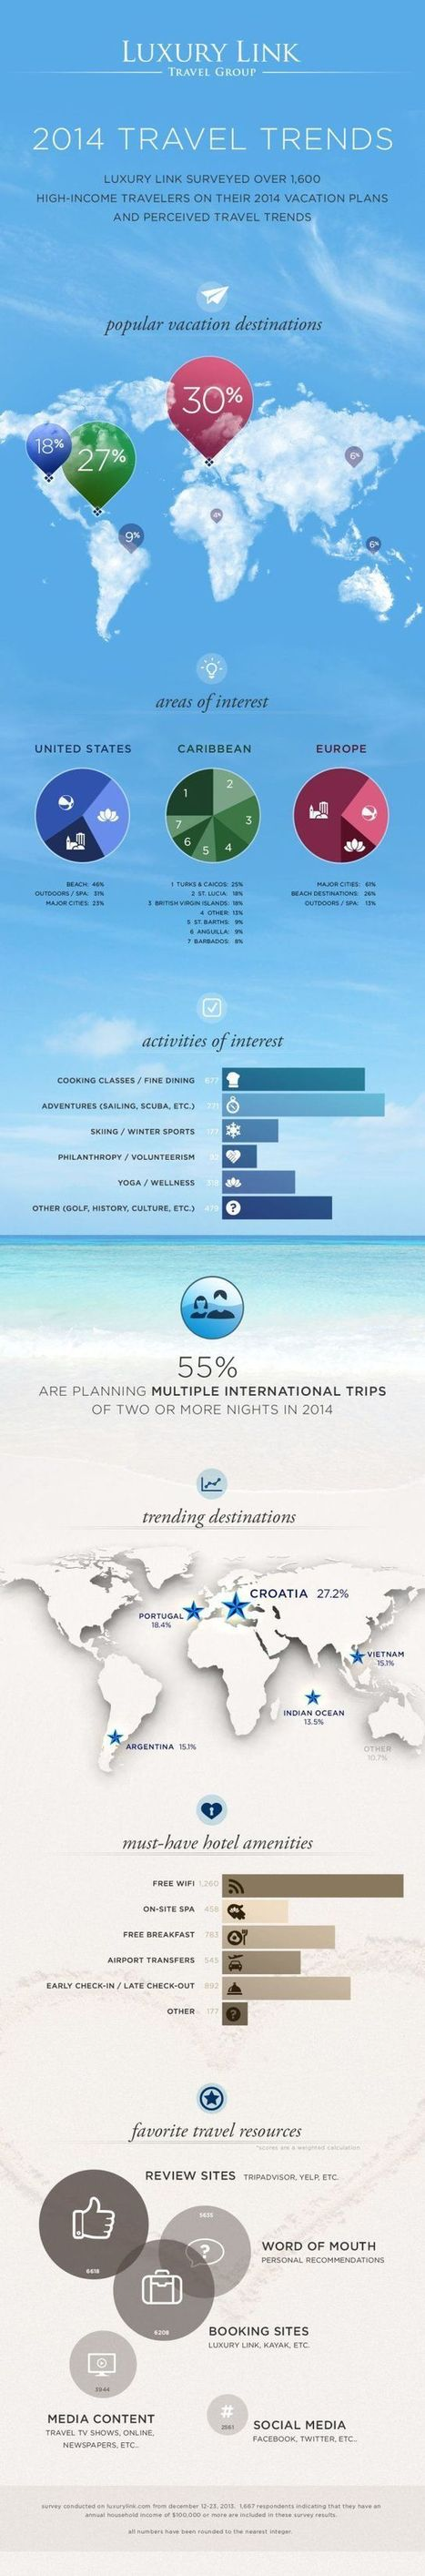 2014 Travel Trends | travel new trends | Scoop.it